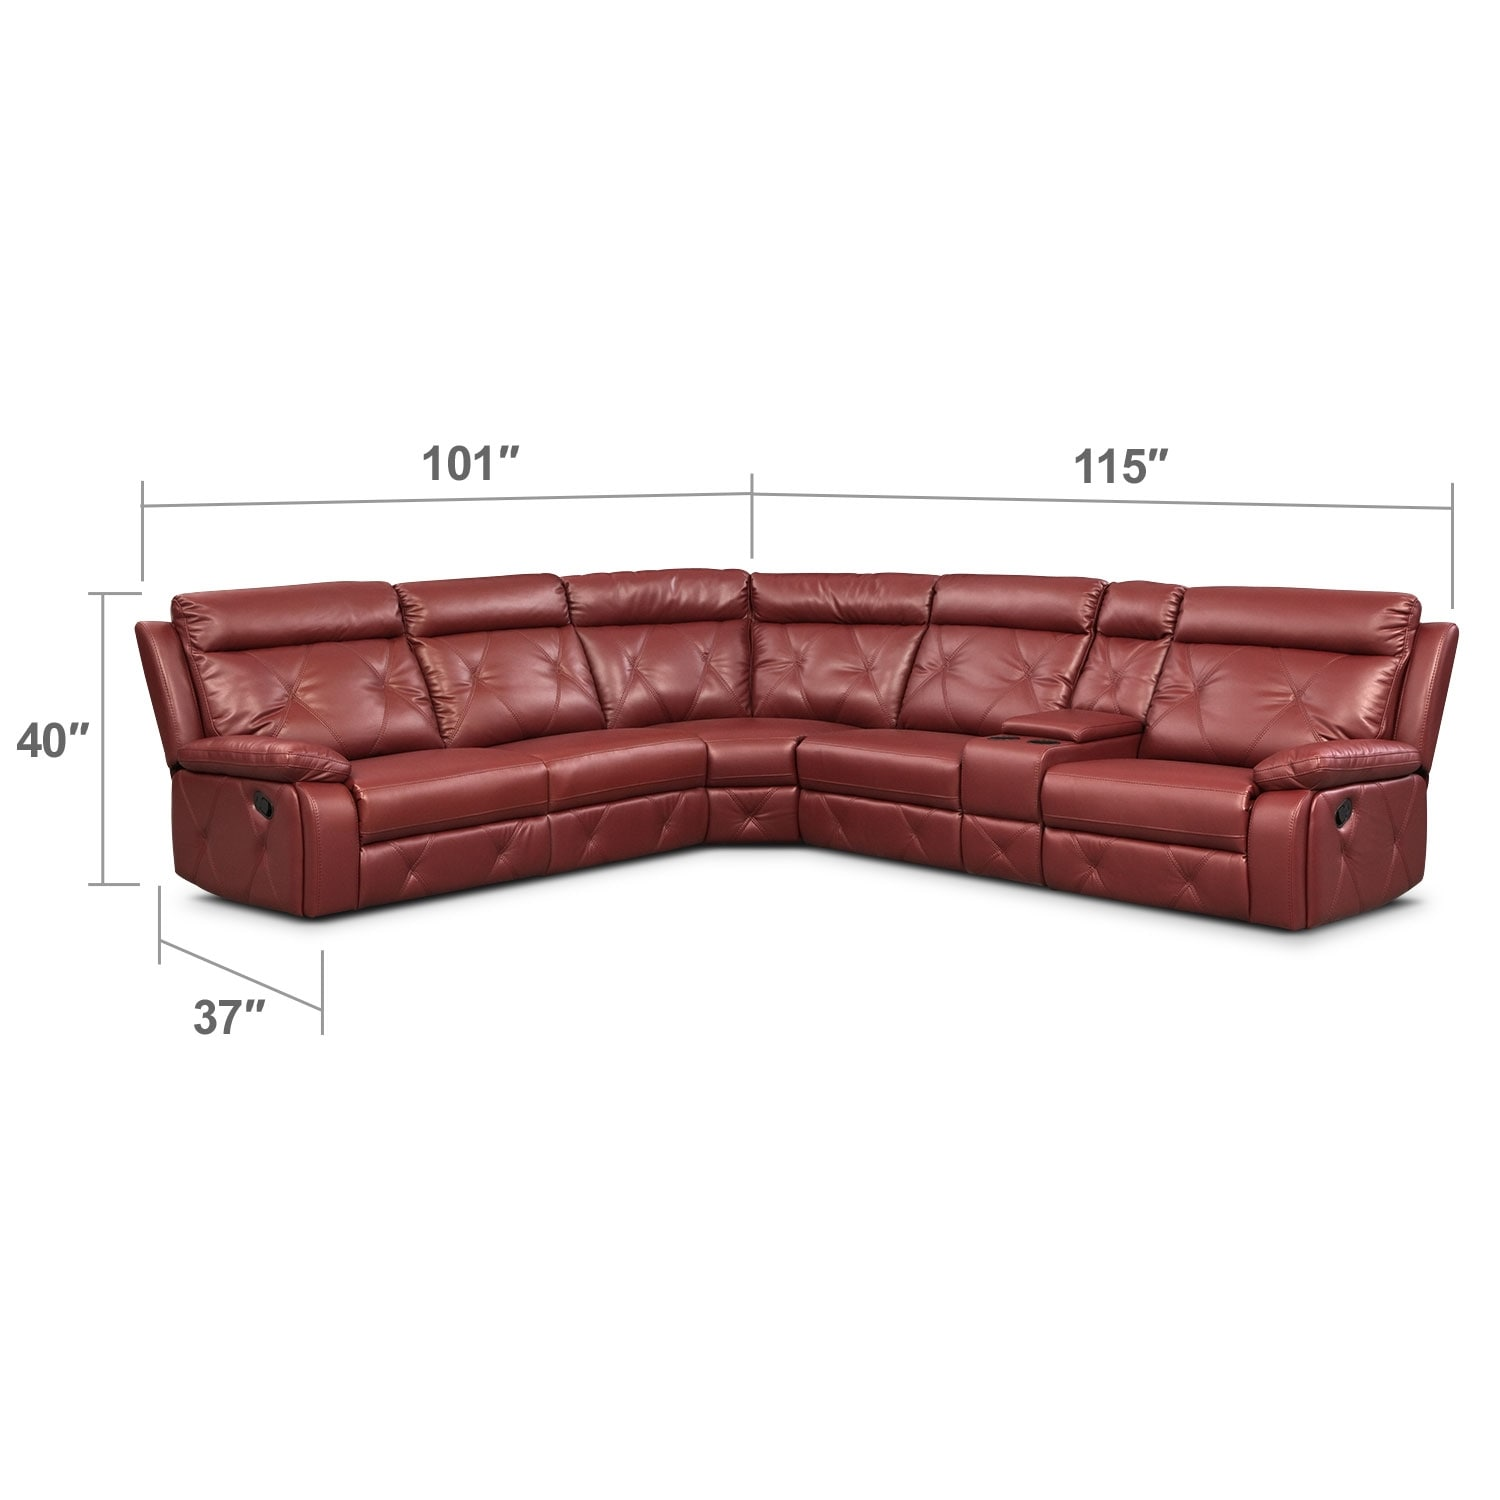 Living Room Furniture - Dante 6-Piece Reclining Sectional with 2 Reclining Seats - Red